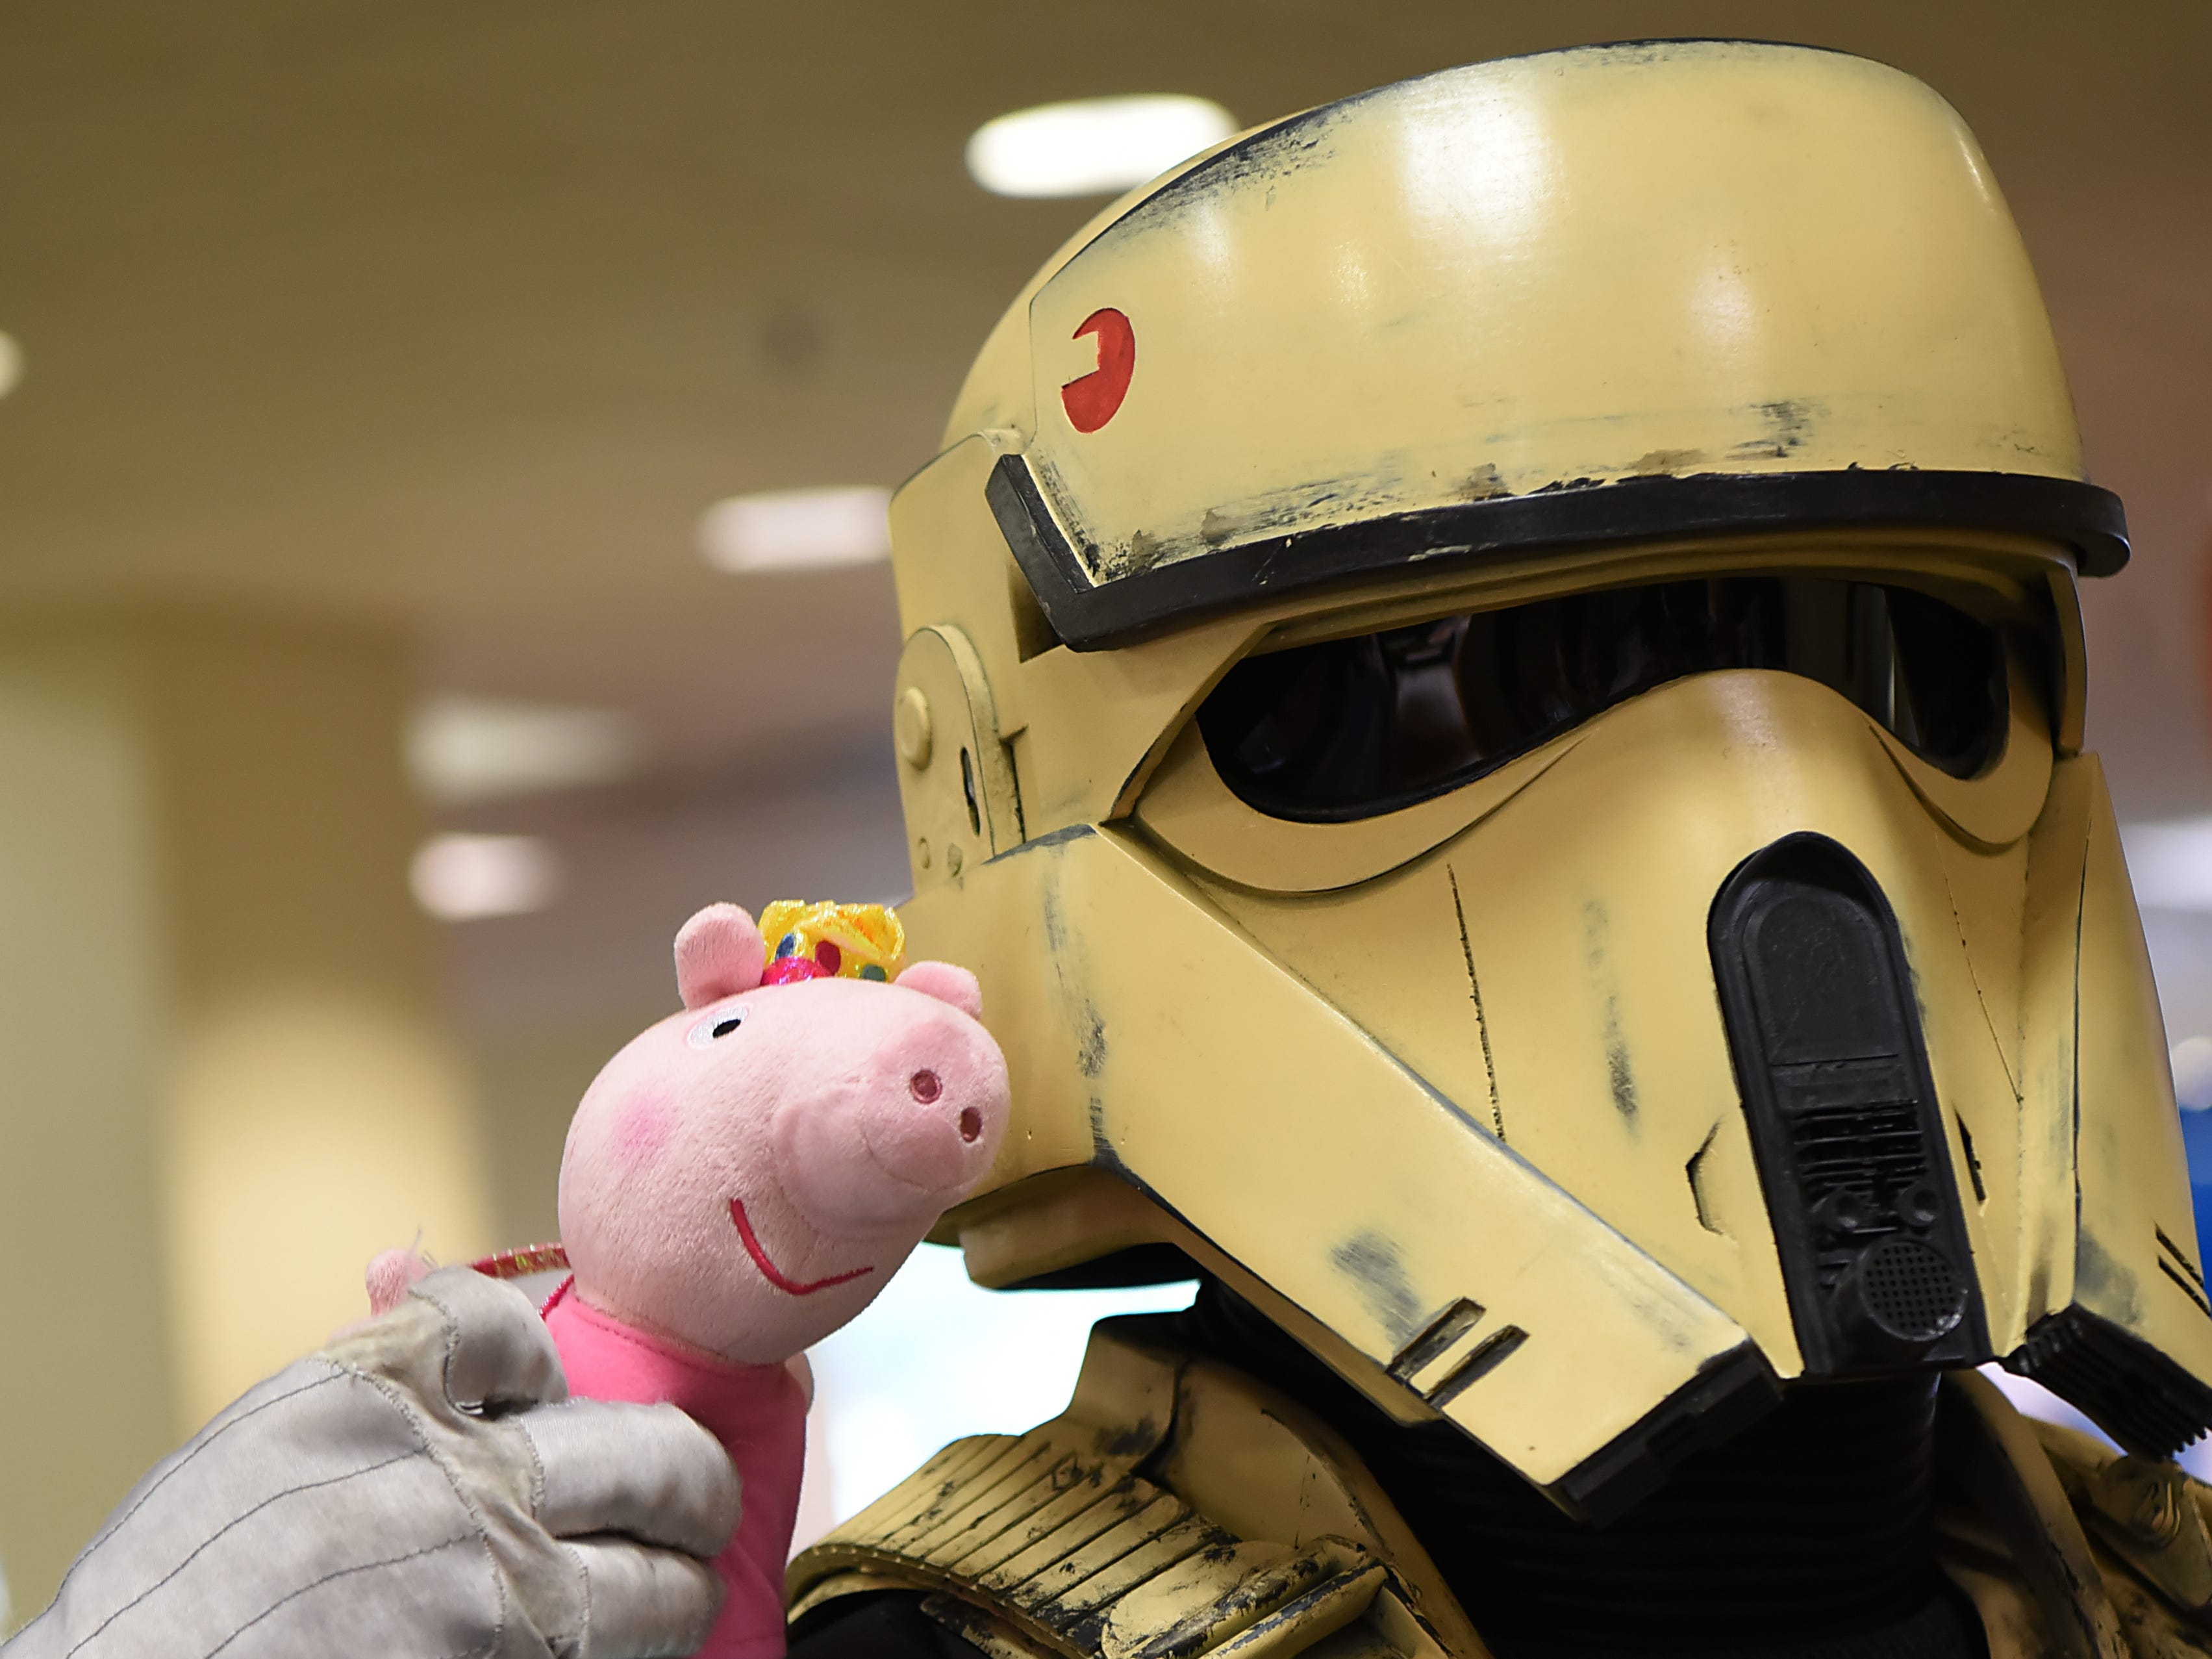 Star Wars cosplayers at the Comic-Con Comes to Bergenfield Public Library in Bergenfield on Saturday August 25, 2018. (Anne-Marie Caruso/@annemariecaruso)